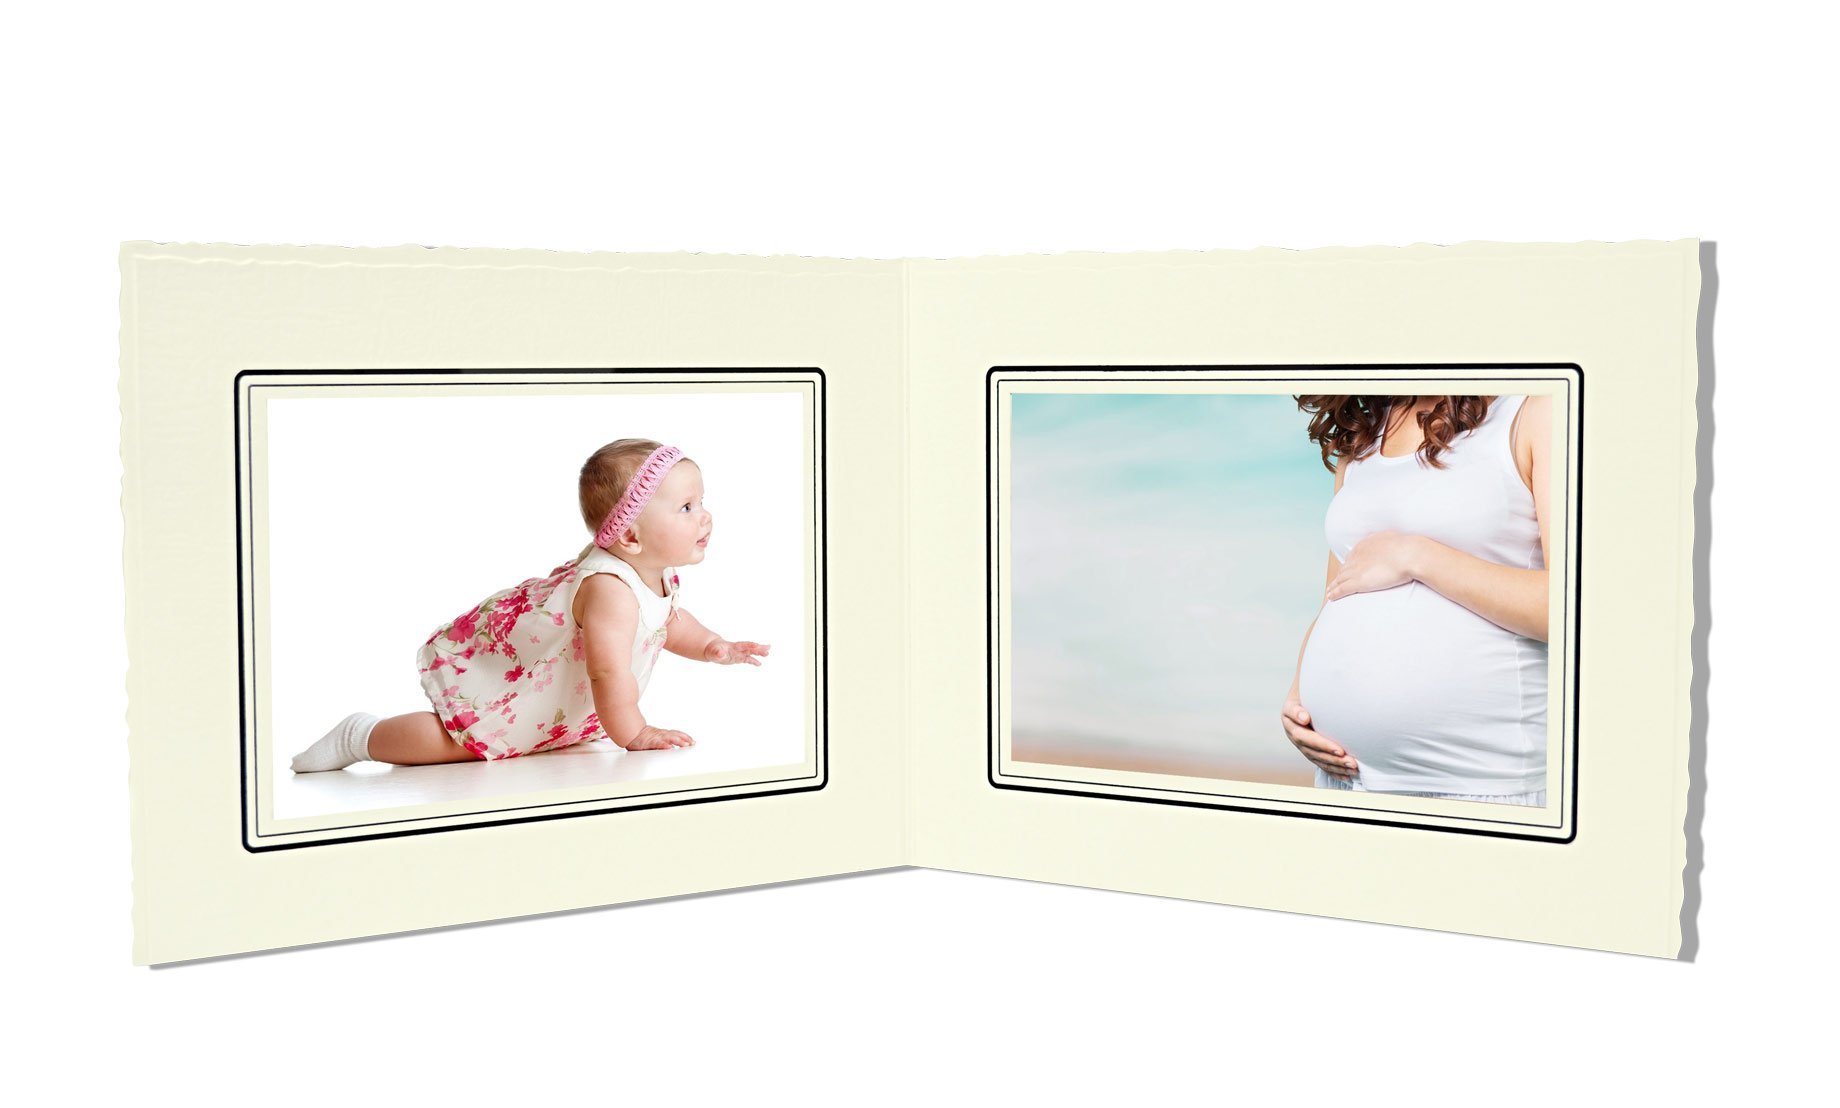 Golden State Art, Cardboard Photo Folder For Double 4x6 Photo (Pack of 50) GS003 Ivory Color by Golden State Art